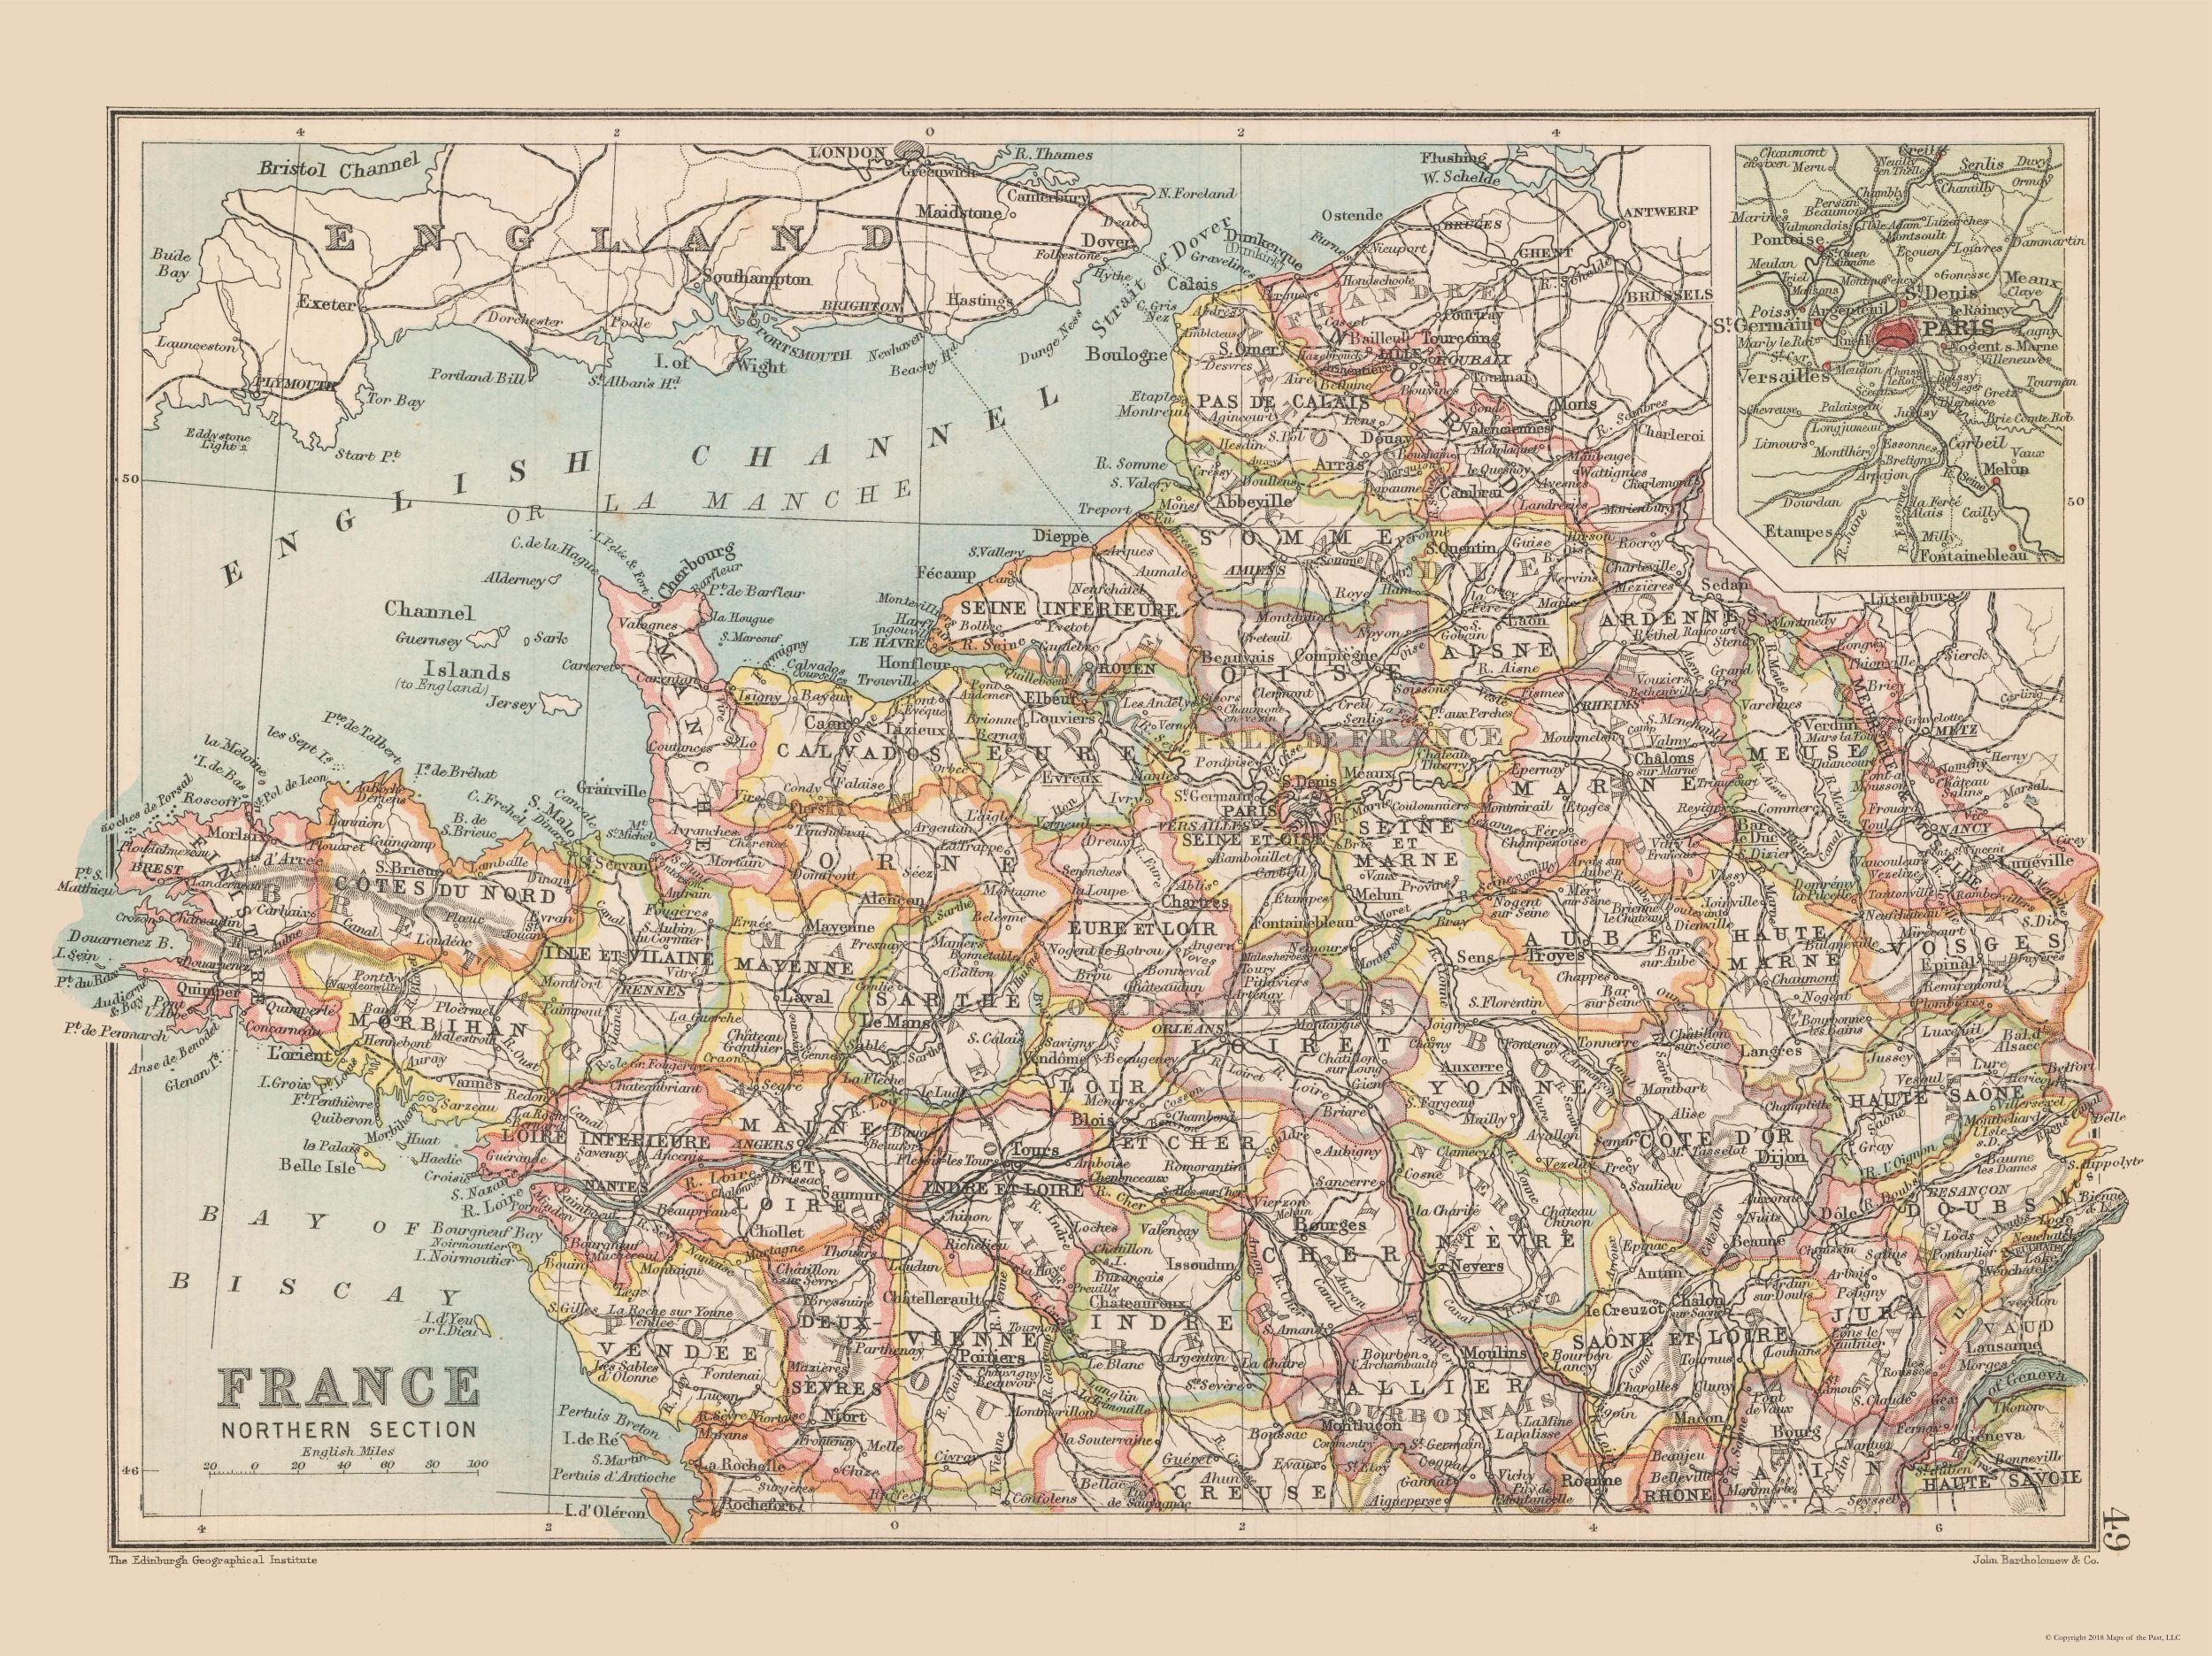 Map Of North France.Old International Maps Northern France Bartholomew 1892 30 72 X 23